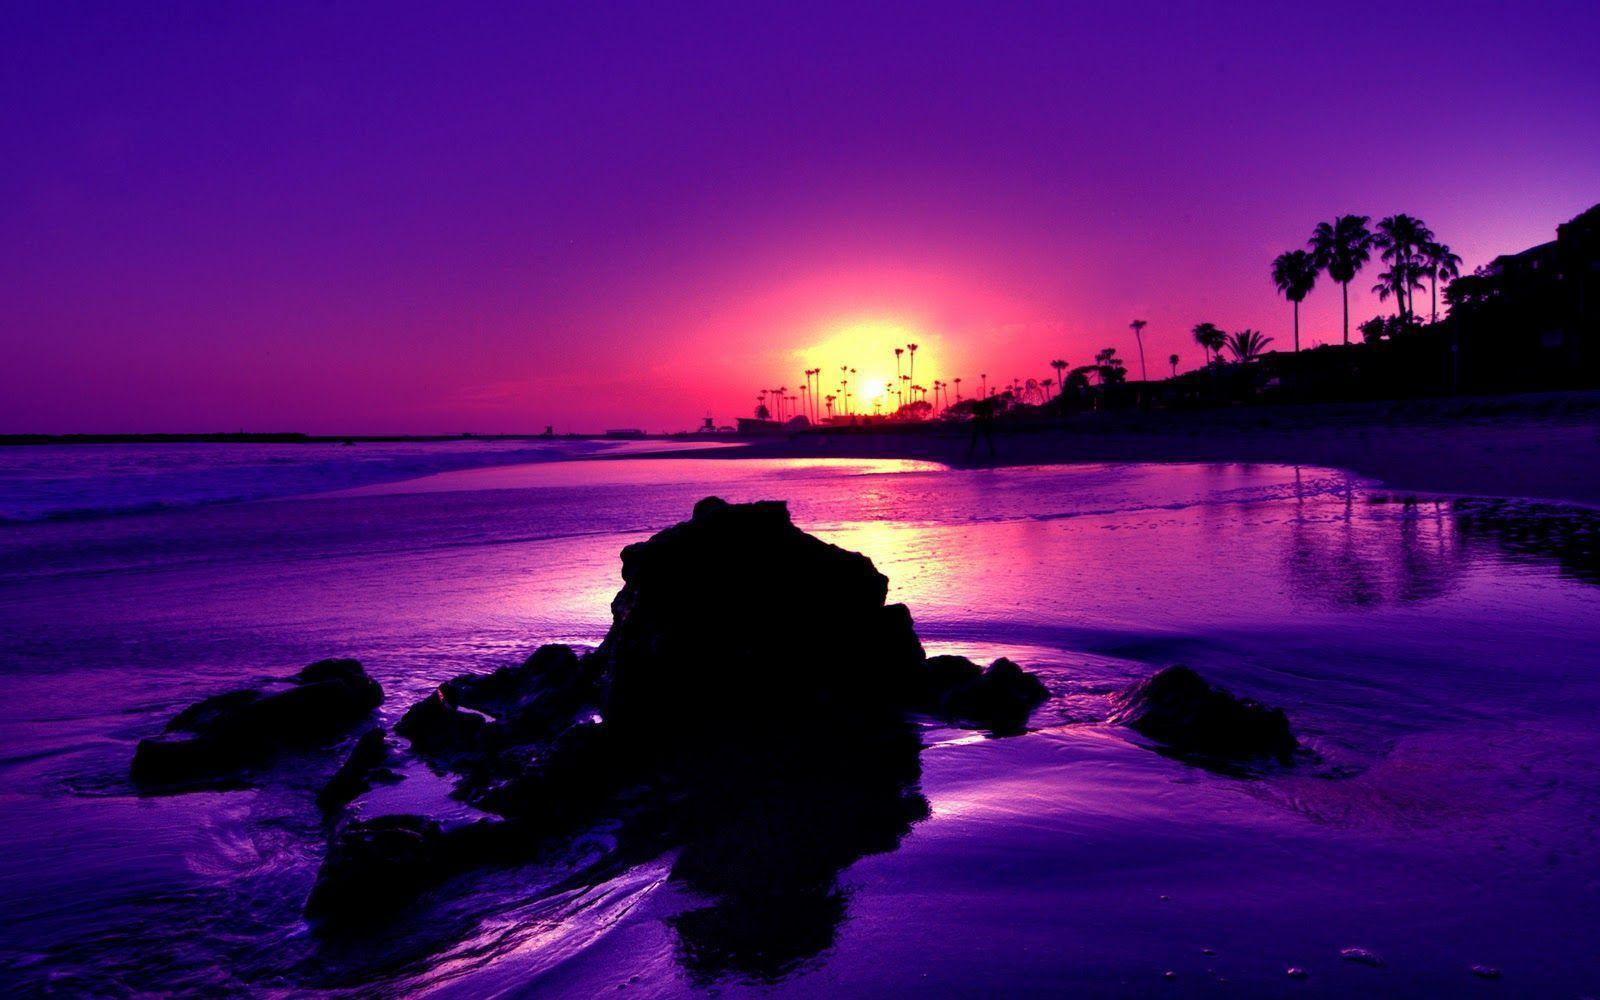 Love Wallpapers Set : Beautiful Sunset Wallpapers - Wallpaper cave